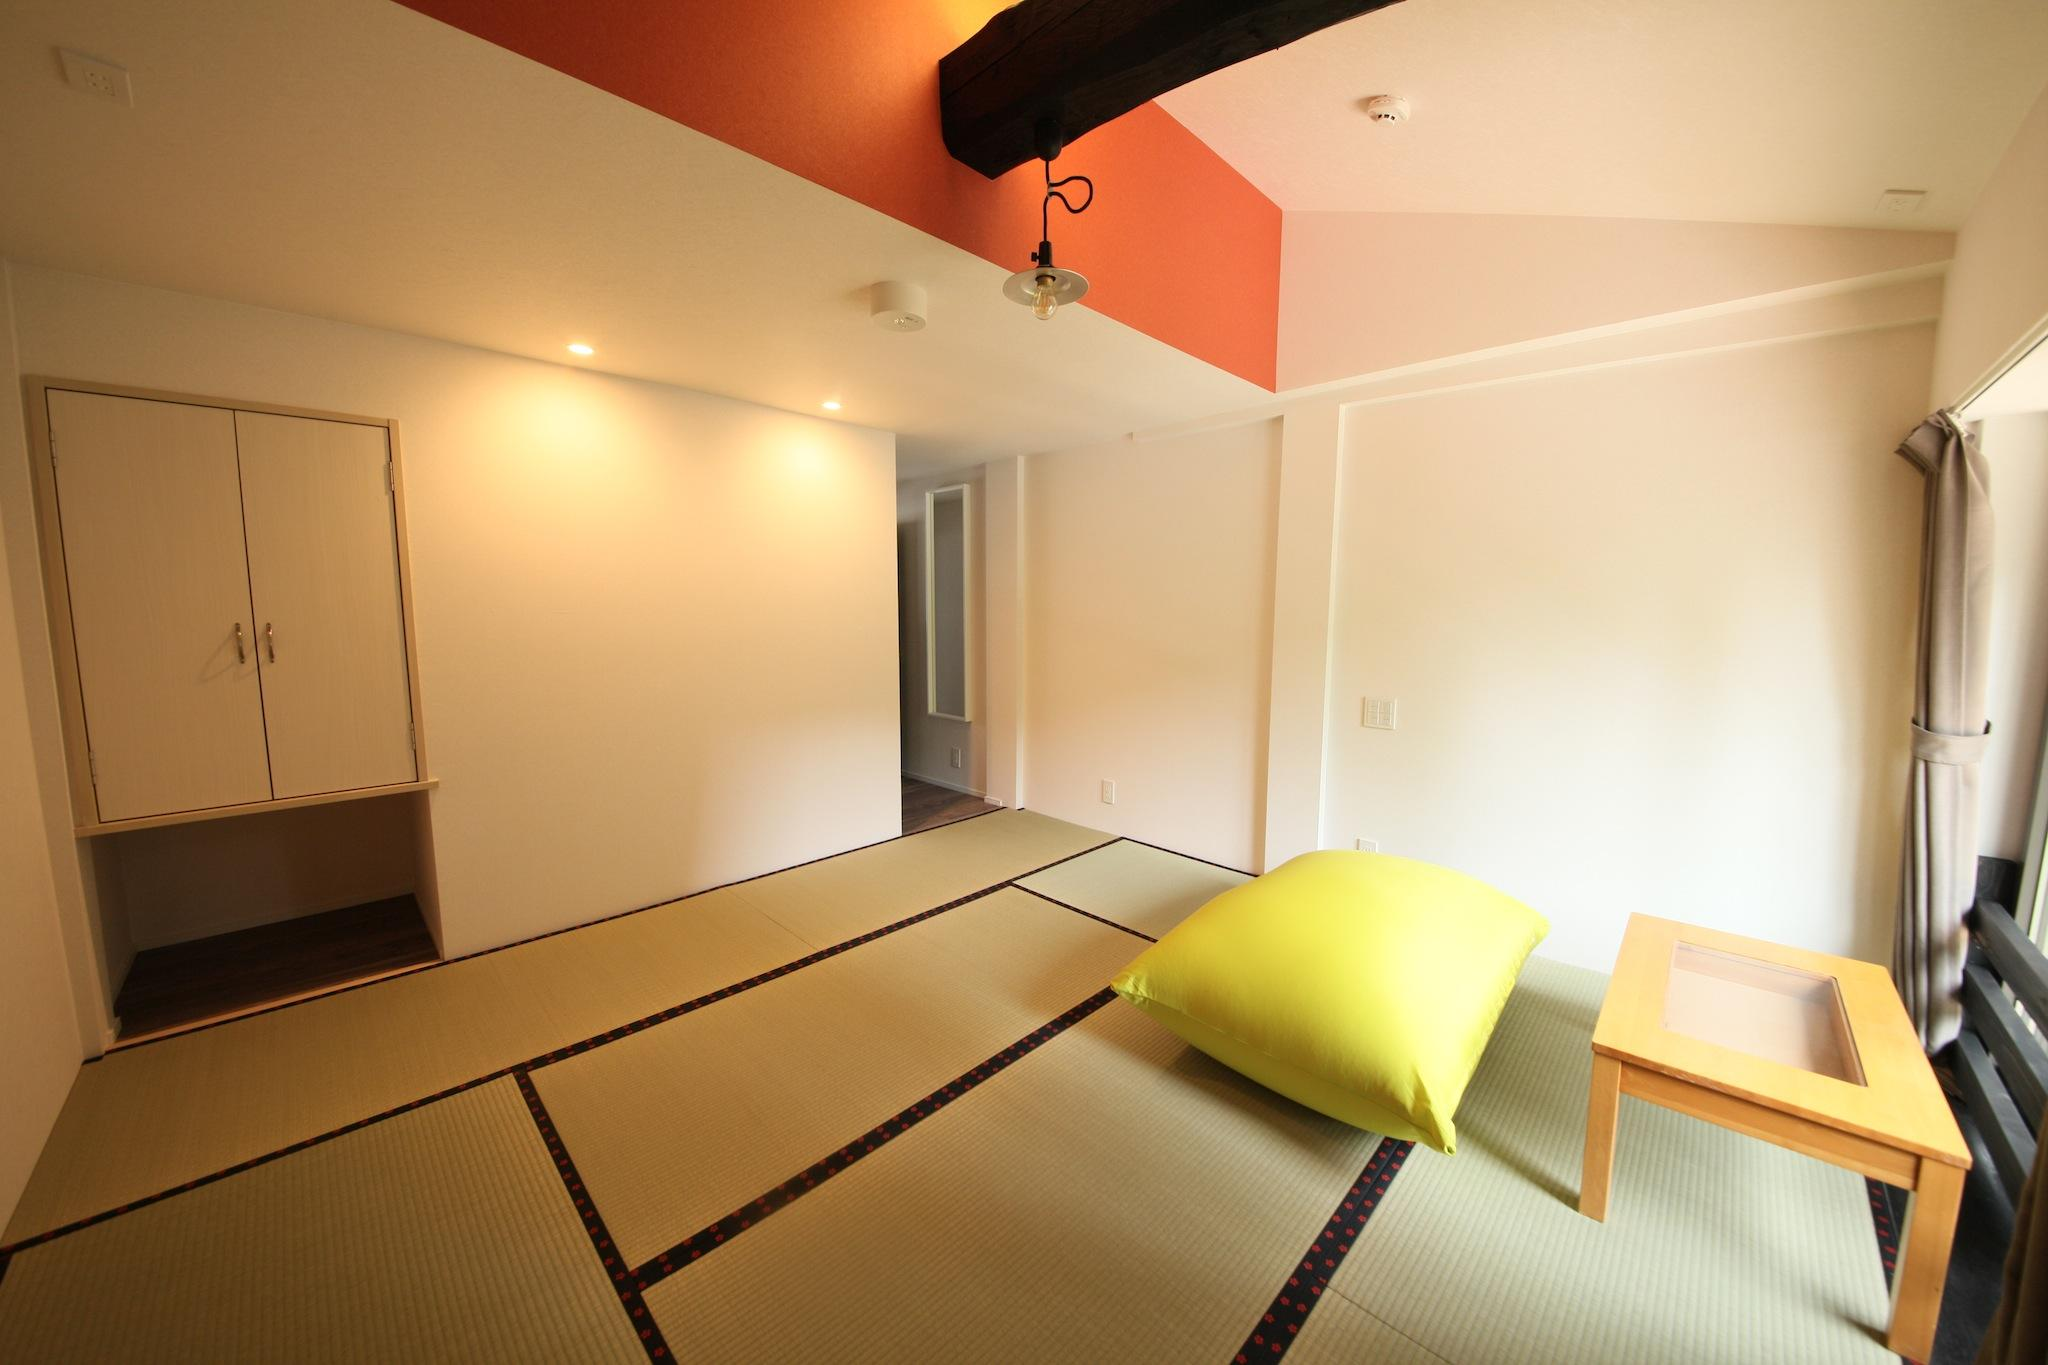 和室 共用バスルーム (Japanese-Style Room with Shared Bathroom)